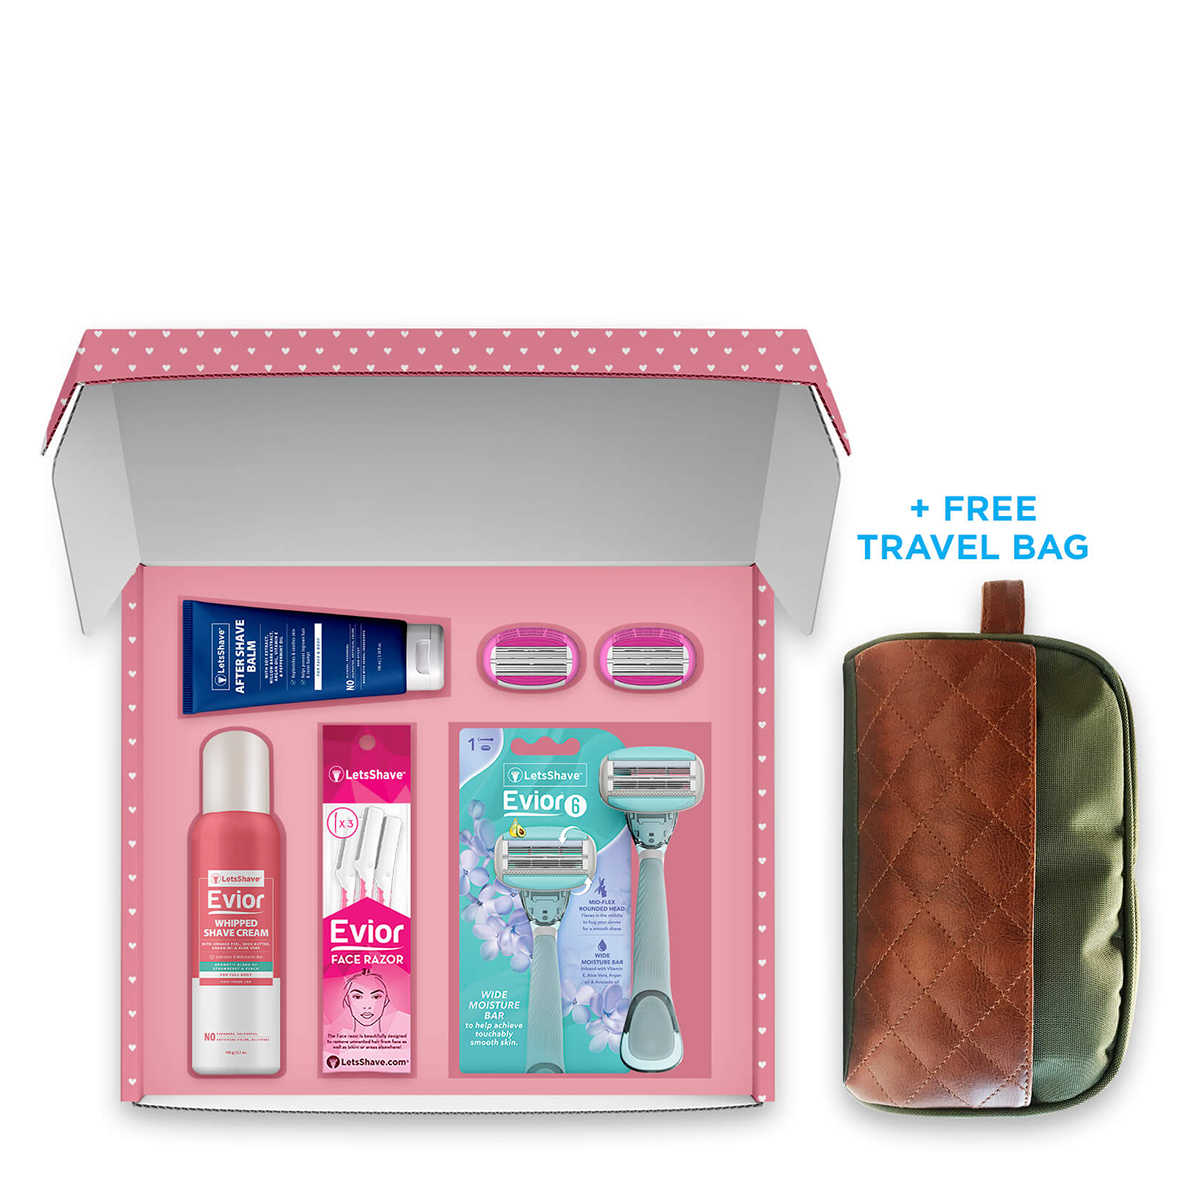 LetsShave Evior 6 Combo Gift Set for Women - Women Whipped Shaving Cream(150 g) + After Shave Balm + Evior 6 Handle + 3 Piece of face razor + 2 Blades + Free Travel Bag